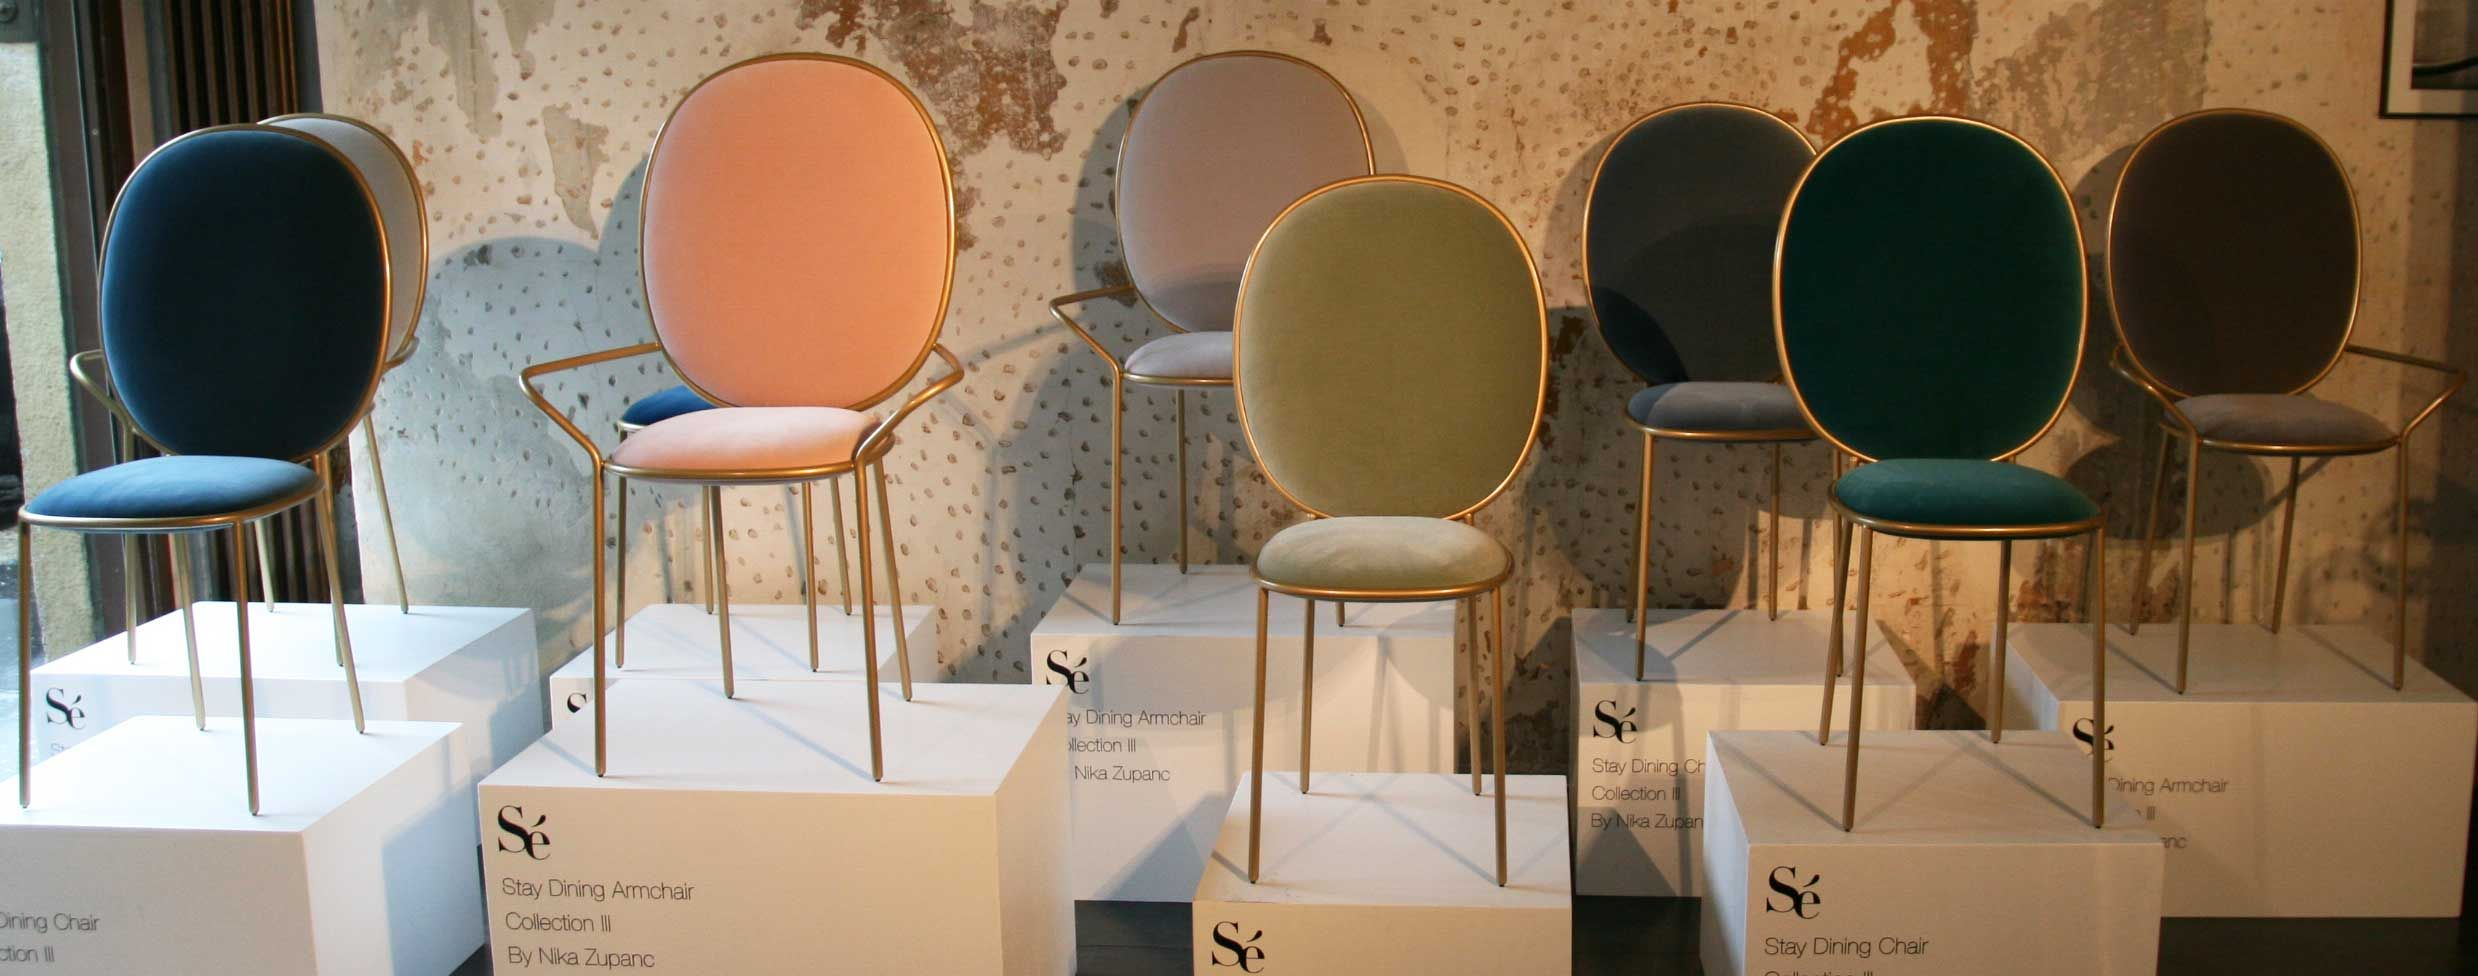 Se-London-Stay-Dining-Chairs-Cover & Milan Salone del Mobile 2015 Day 2 | Chairs u0026 Stools | Pinterest ...